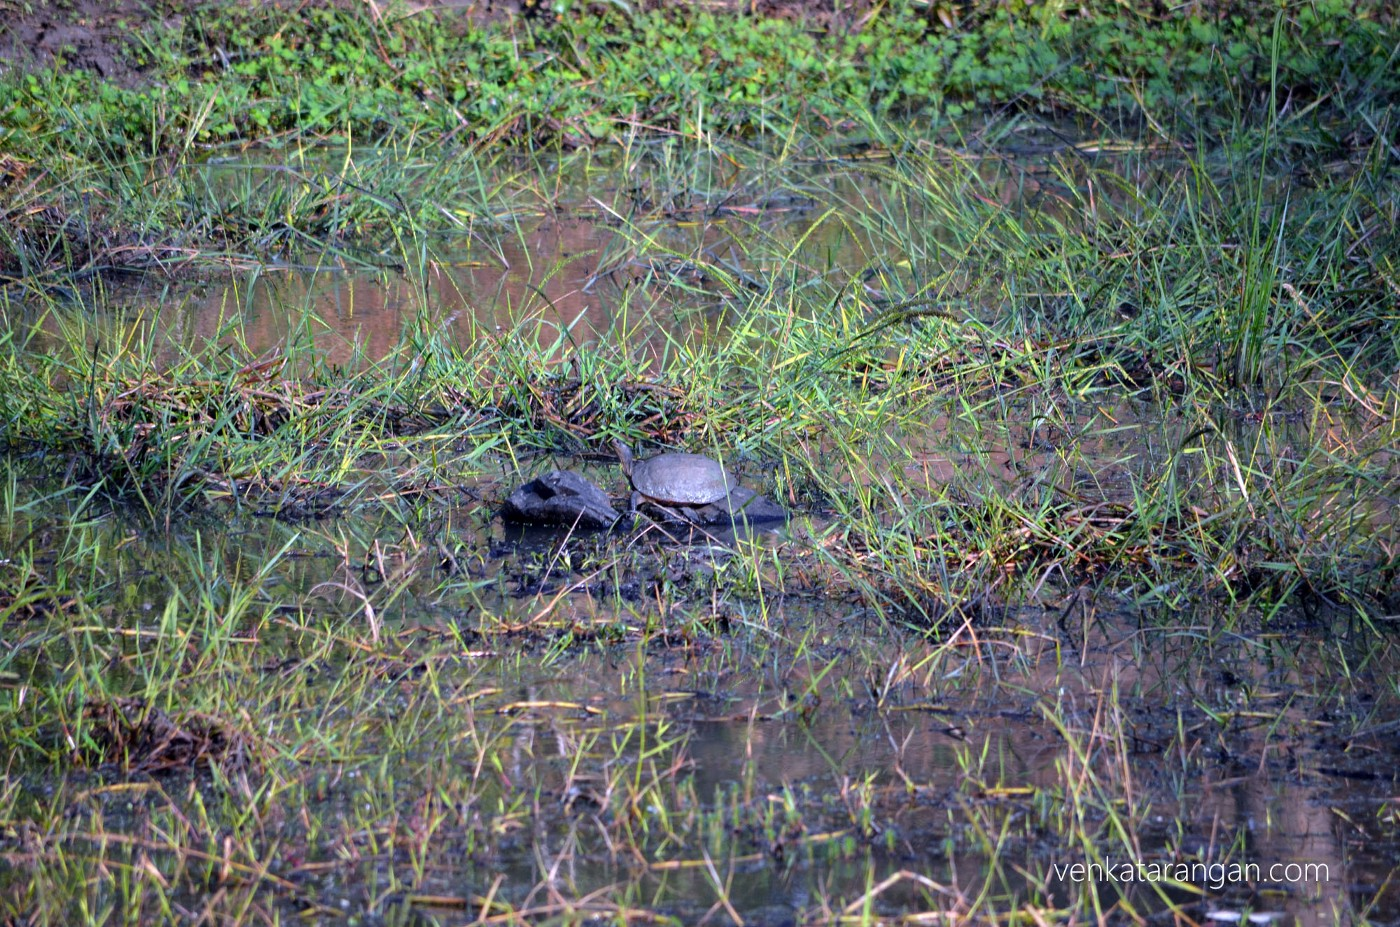 Indian Black Turtle (in the centre)